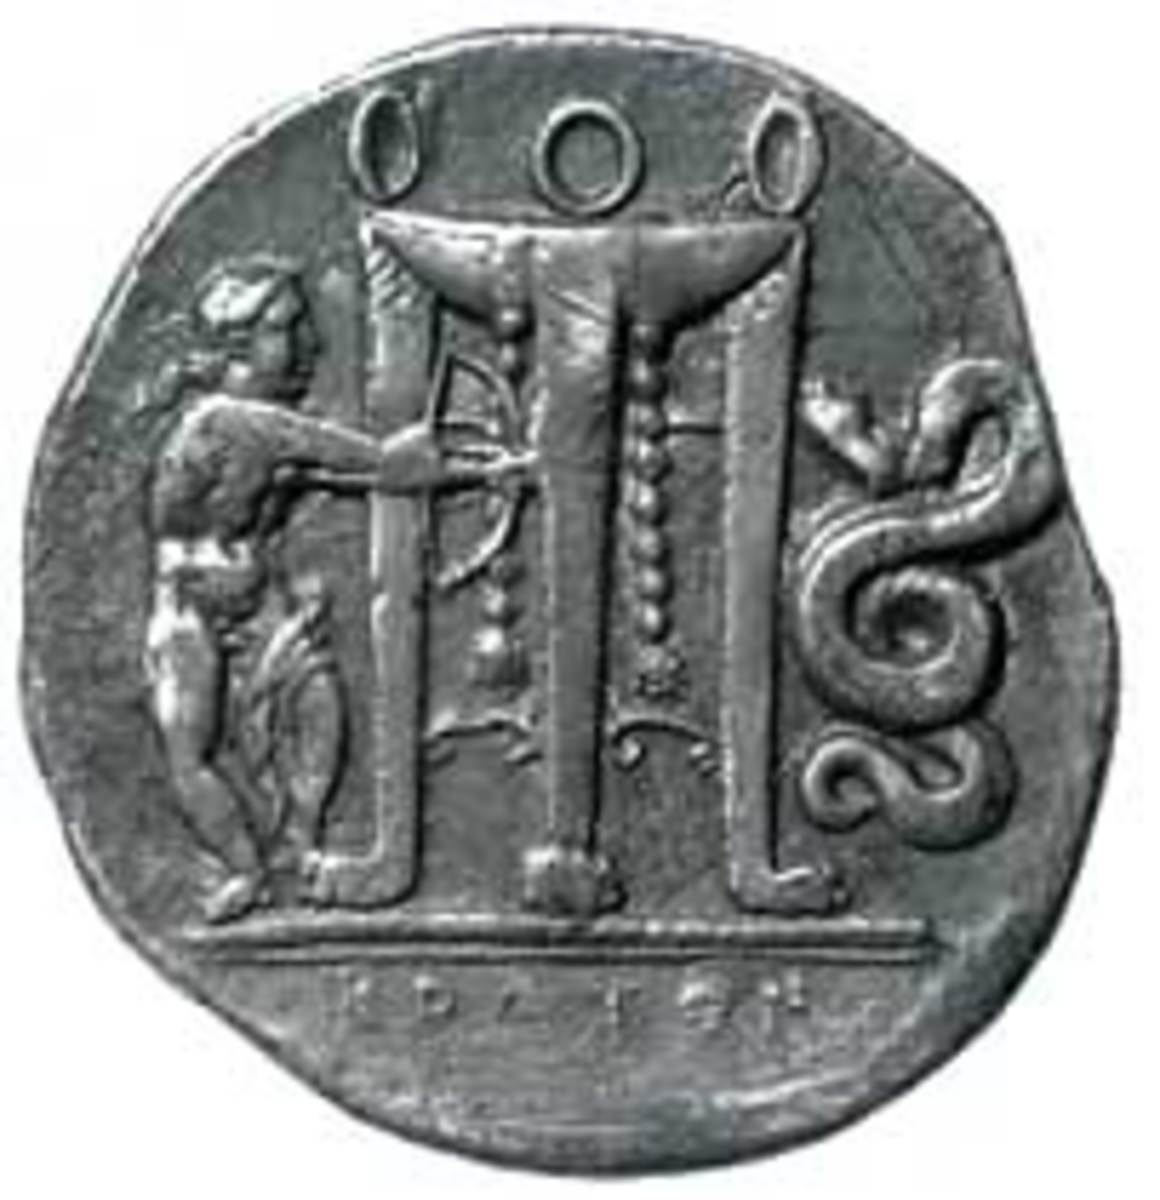 Pythia depicted on an ancient coin